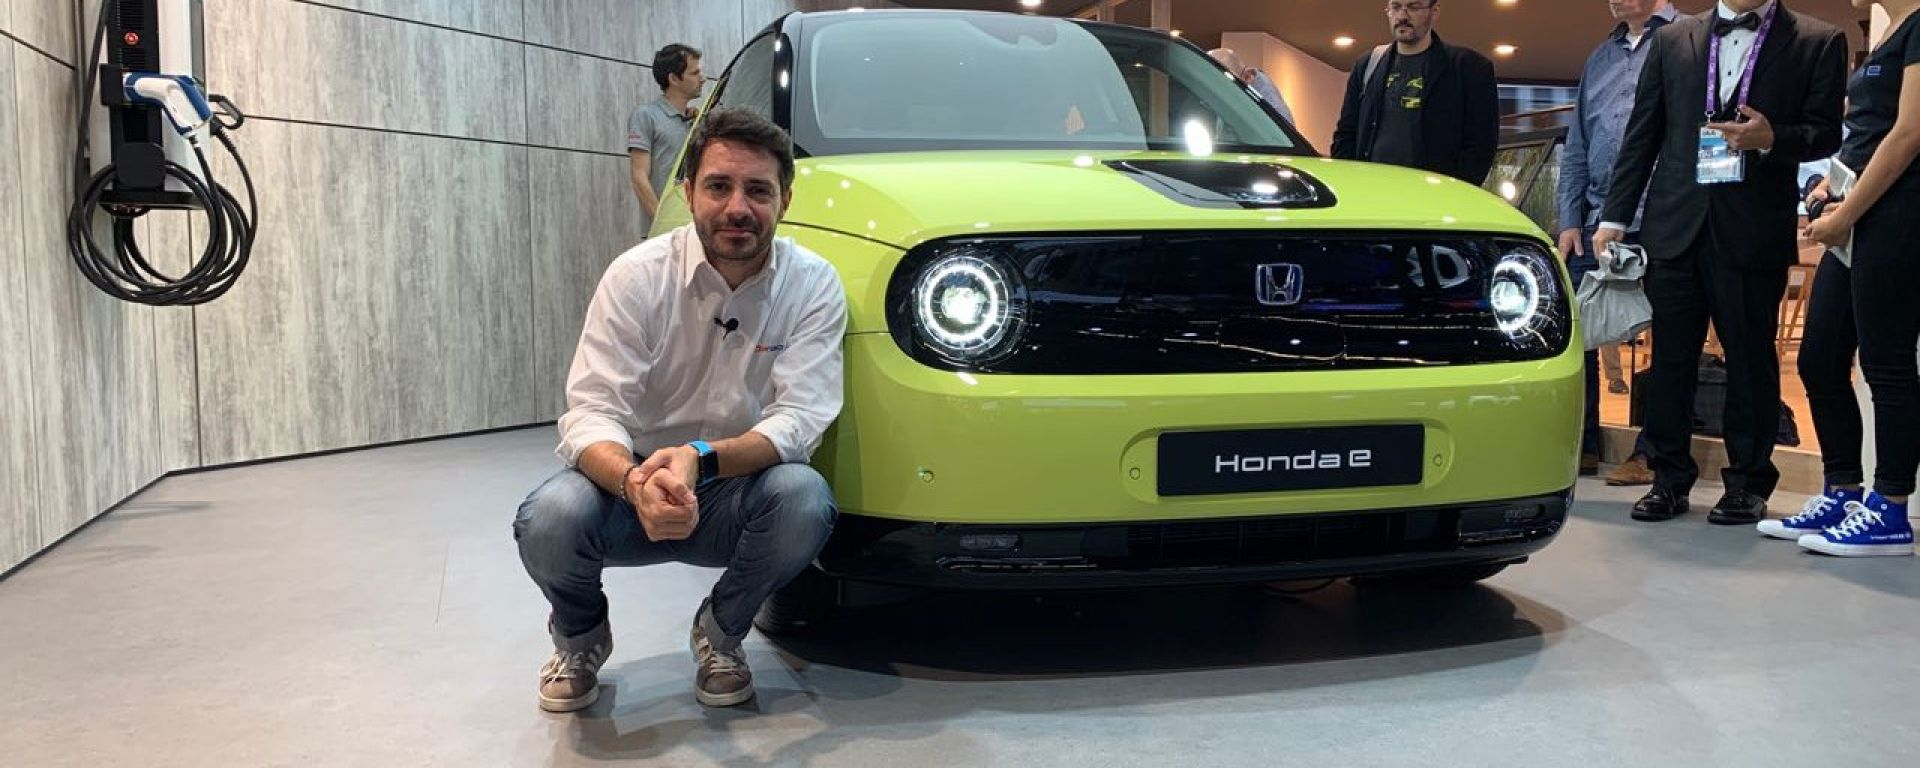 Nuova Honda e in video dal Salone di Francoforte 2019